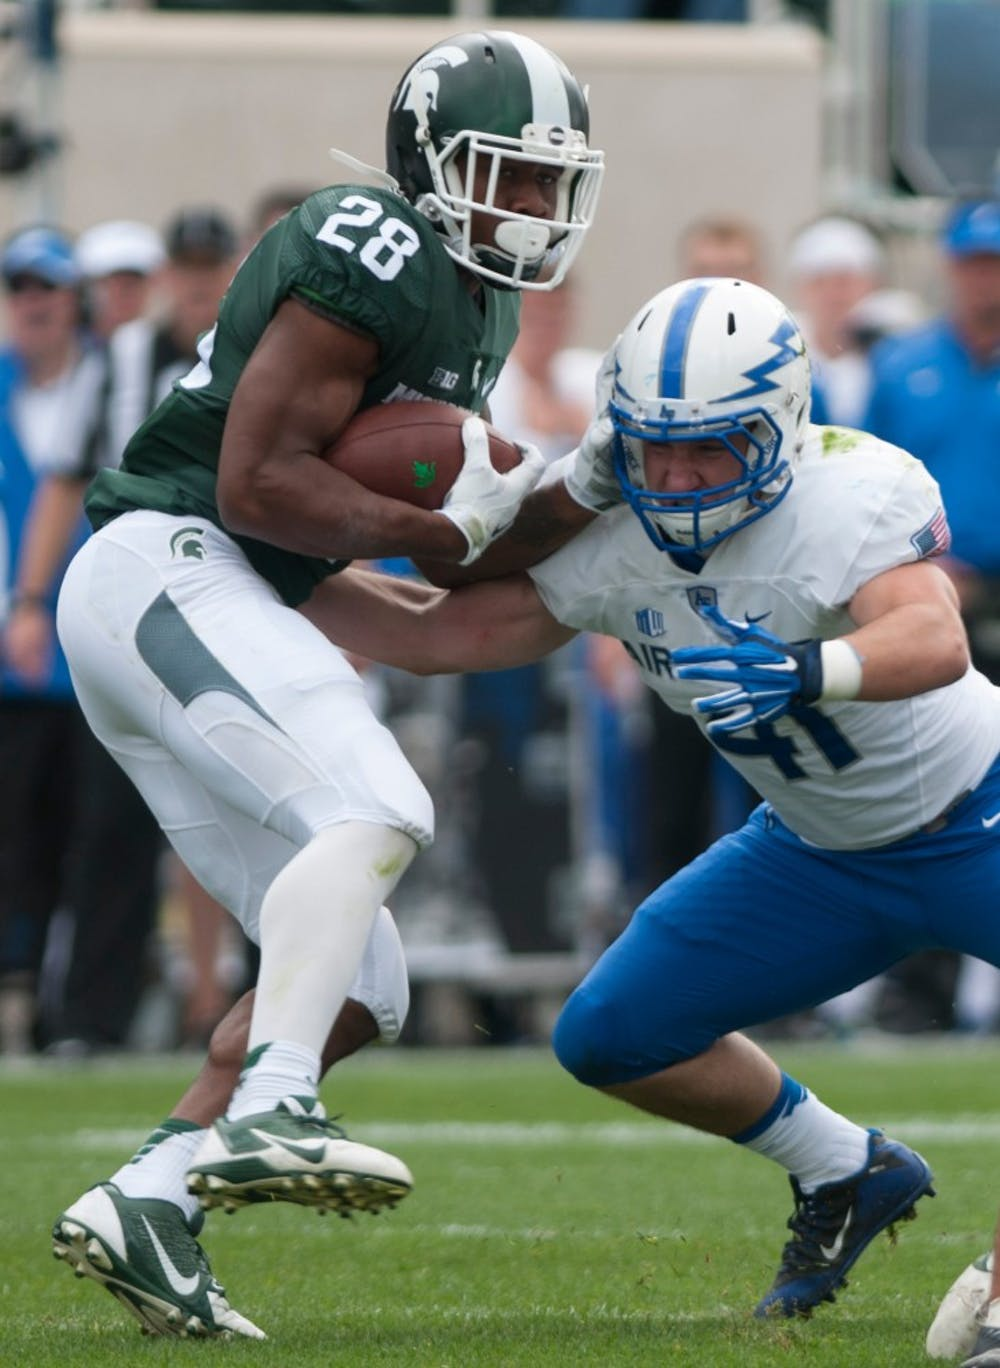 <p>Air Force linebacker Patrick Healy tackles redshirt freshman running back Madre London in the first half during the game against Air Force on Sept. 19, 2015 at Spartan Stadium. The Spartans defeated the Falcons, 35-21. Kennedy Thatch/The State News</p>